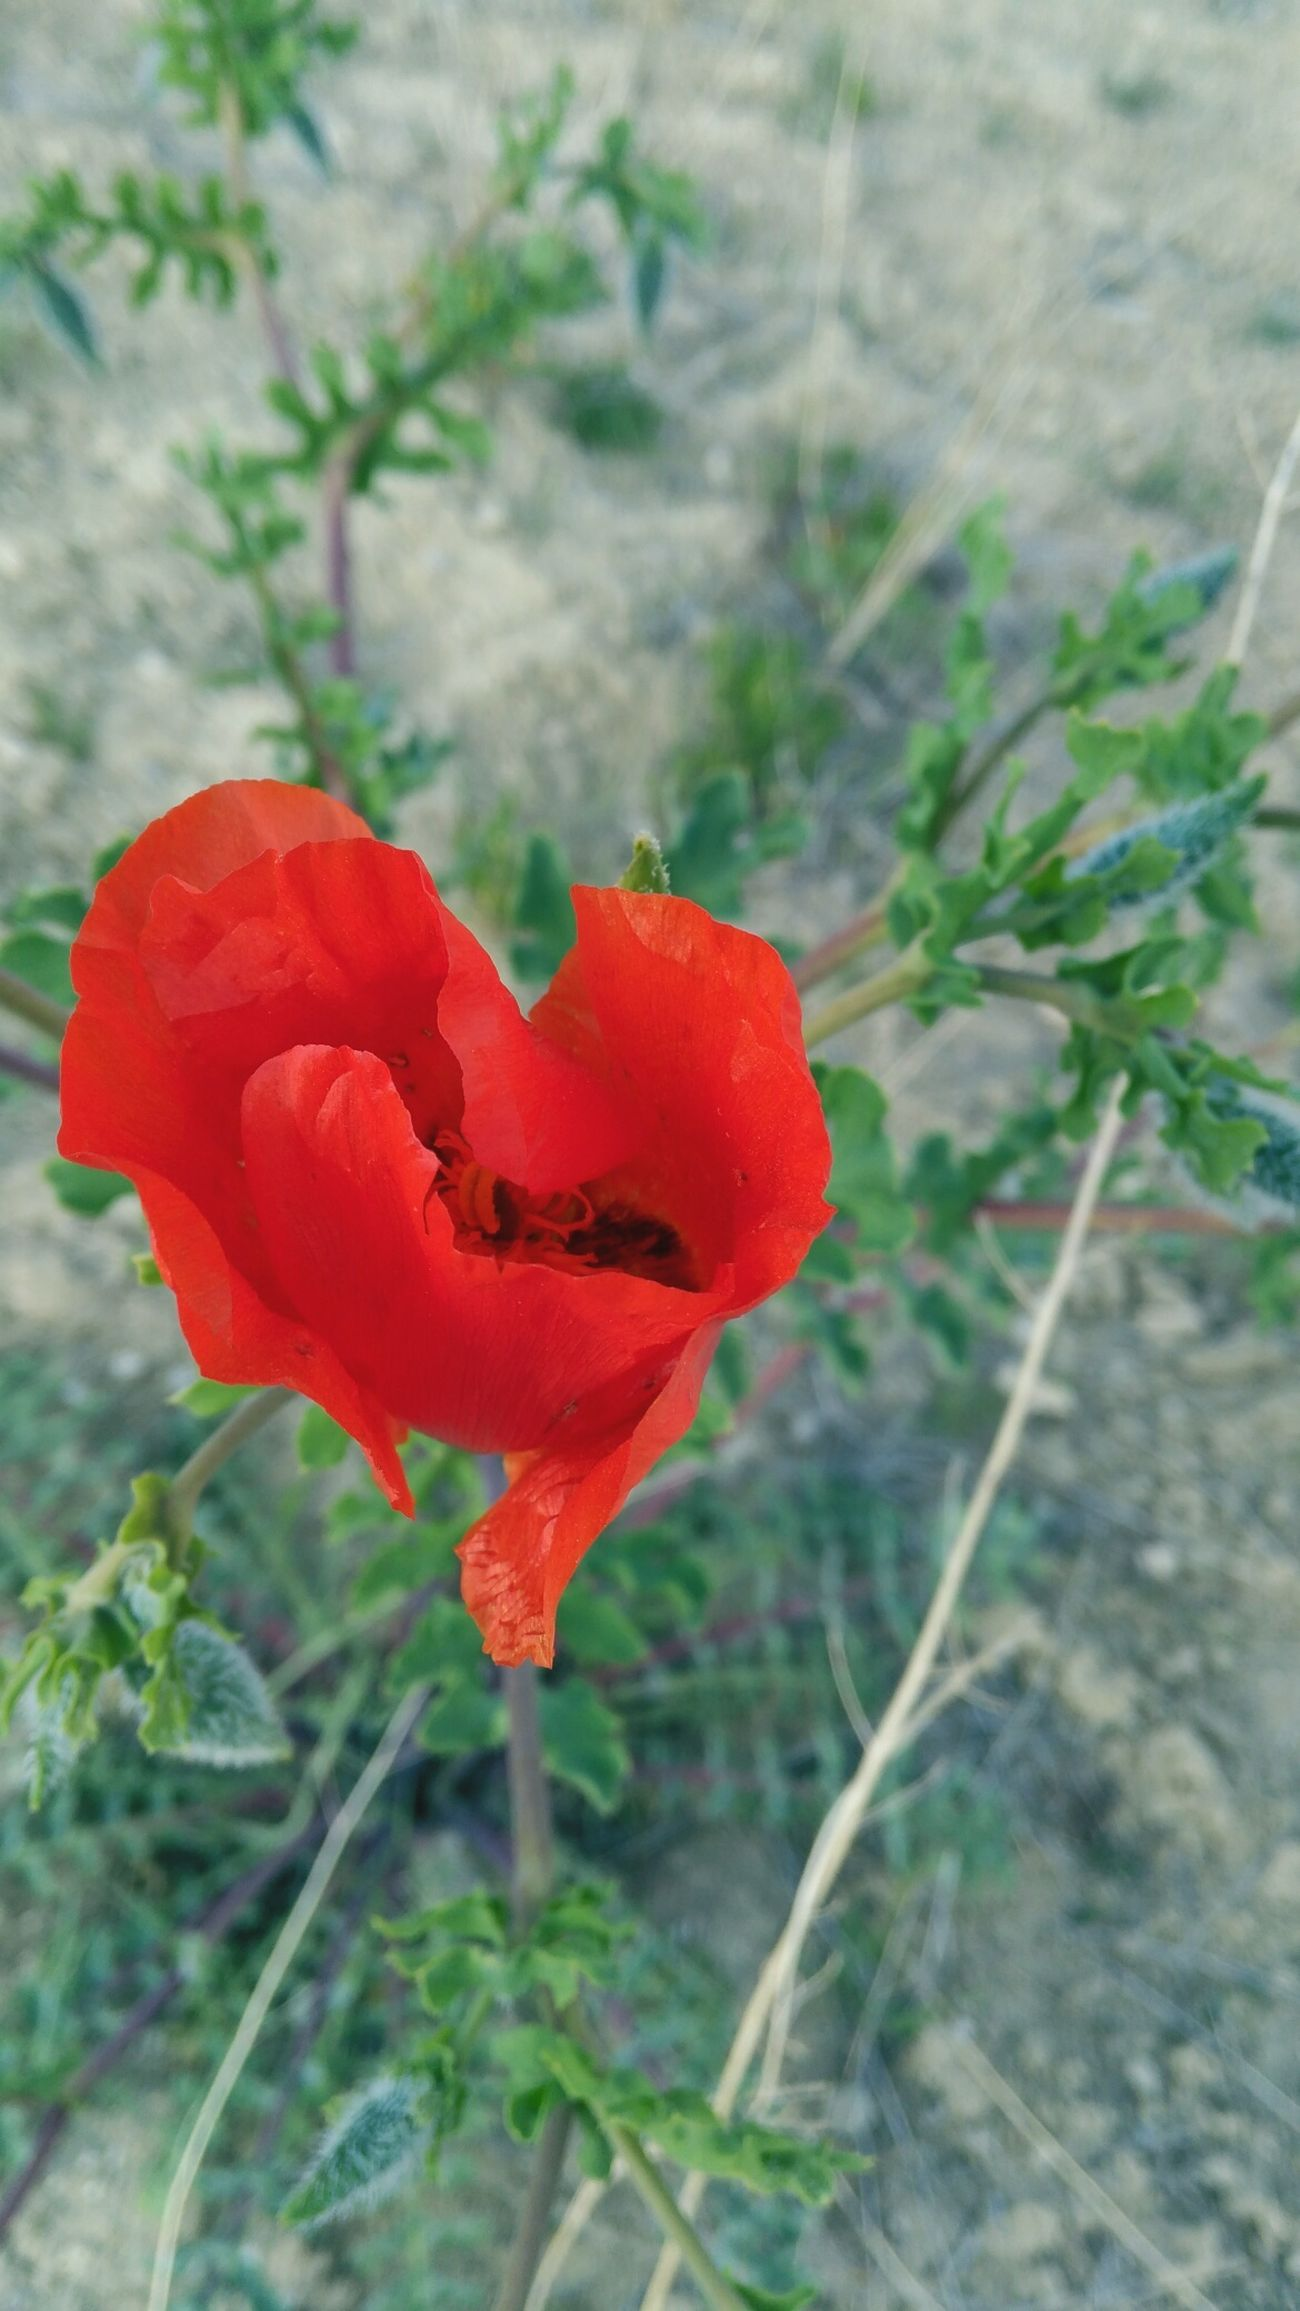 Red Poppy Plant Nature Flower No People Growth Rose - Flower Love Close-up Focus On Foreground Day Valentine's Day - Holiday Outdoors Beauty In Nature Fragility Flower Head Freshness Fly Agaric Mushroom Vodafone Smart Ultra 6 Burdur Türkiye 2017 Looking At Camera Nature